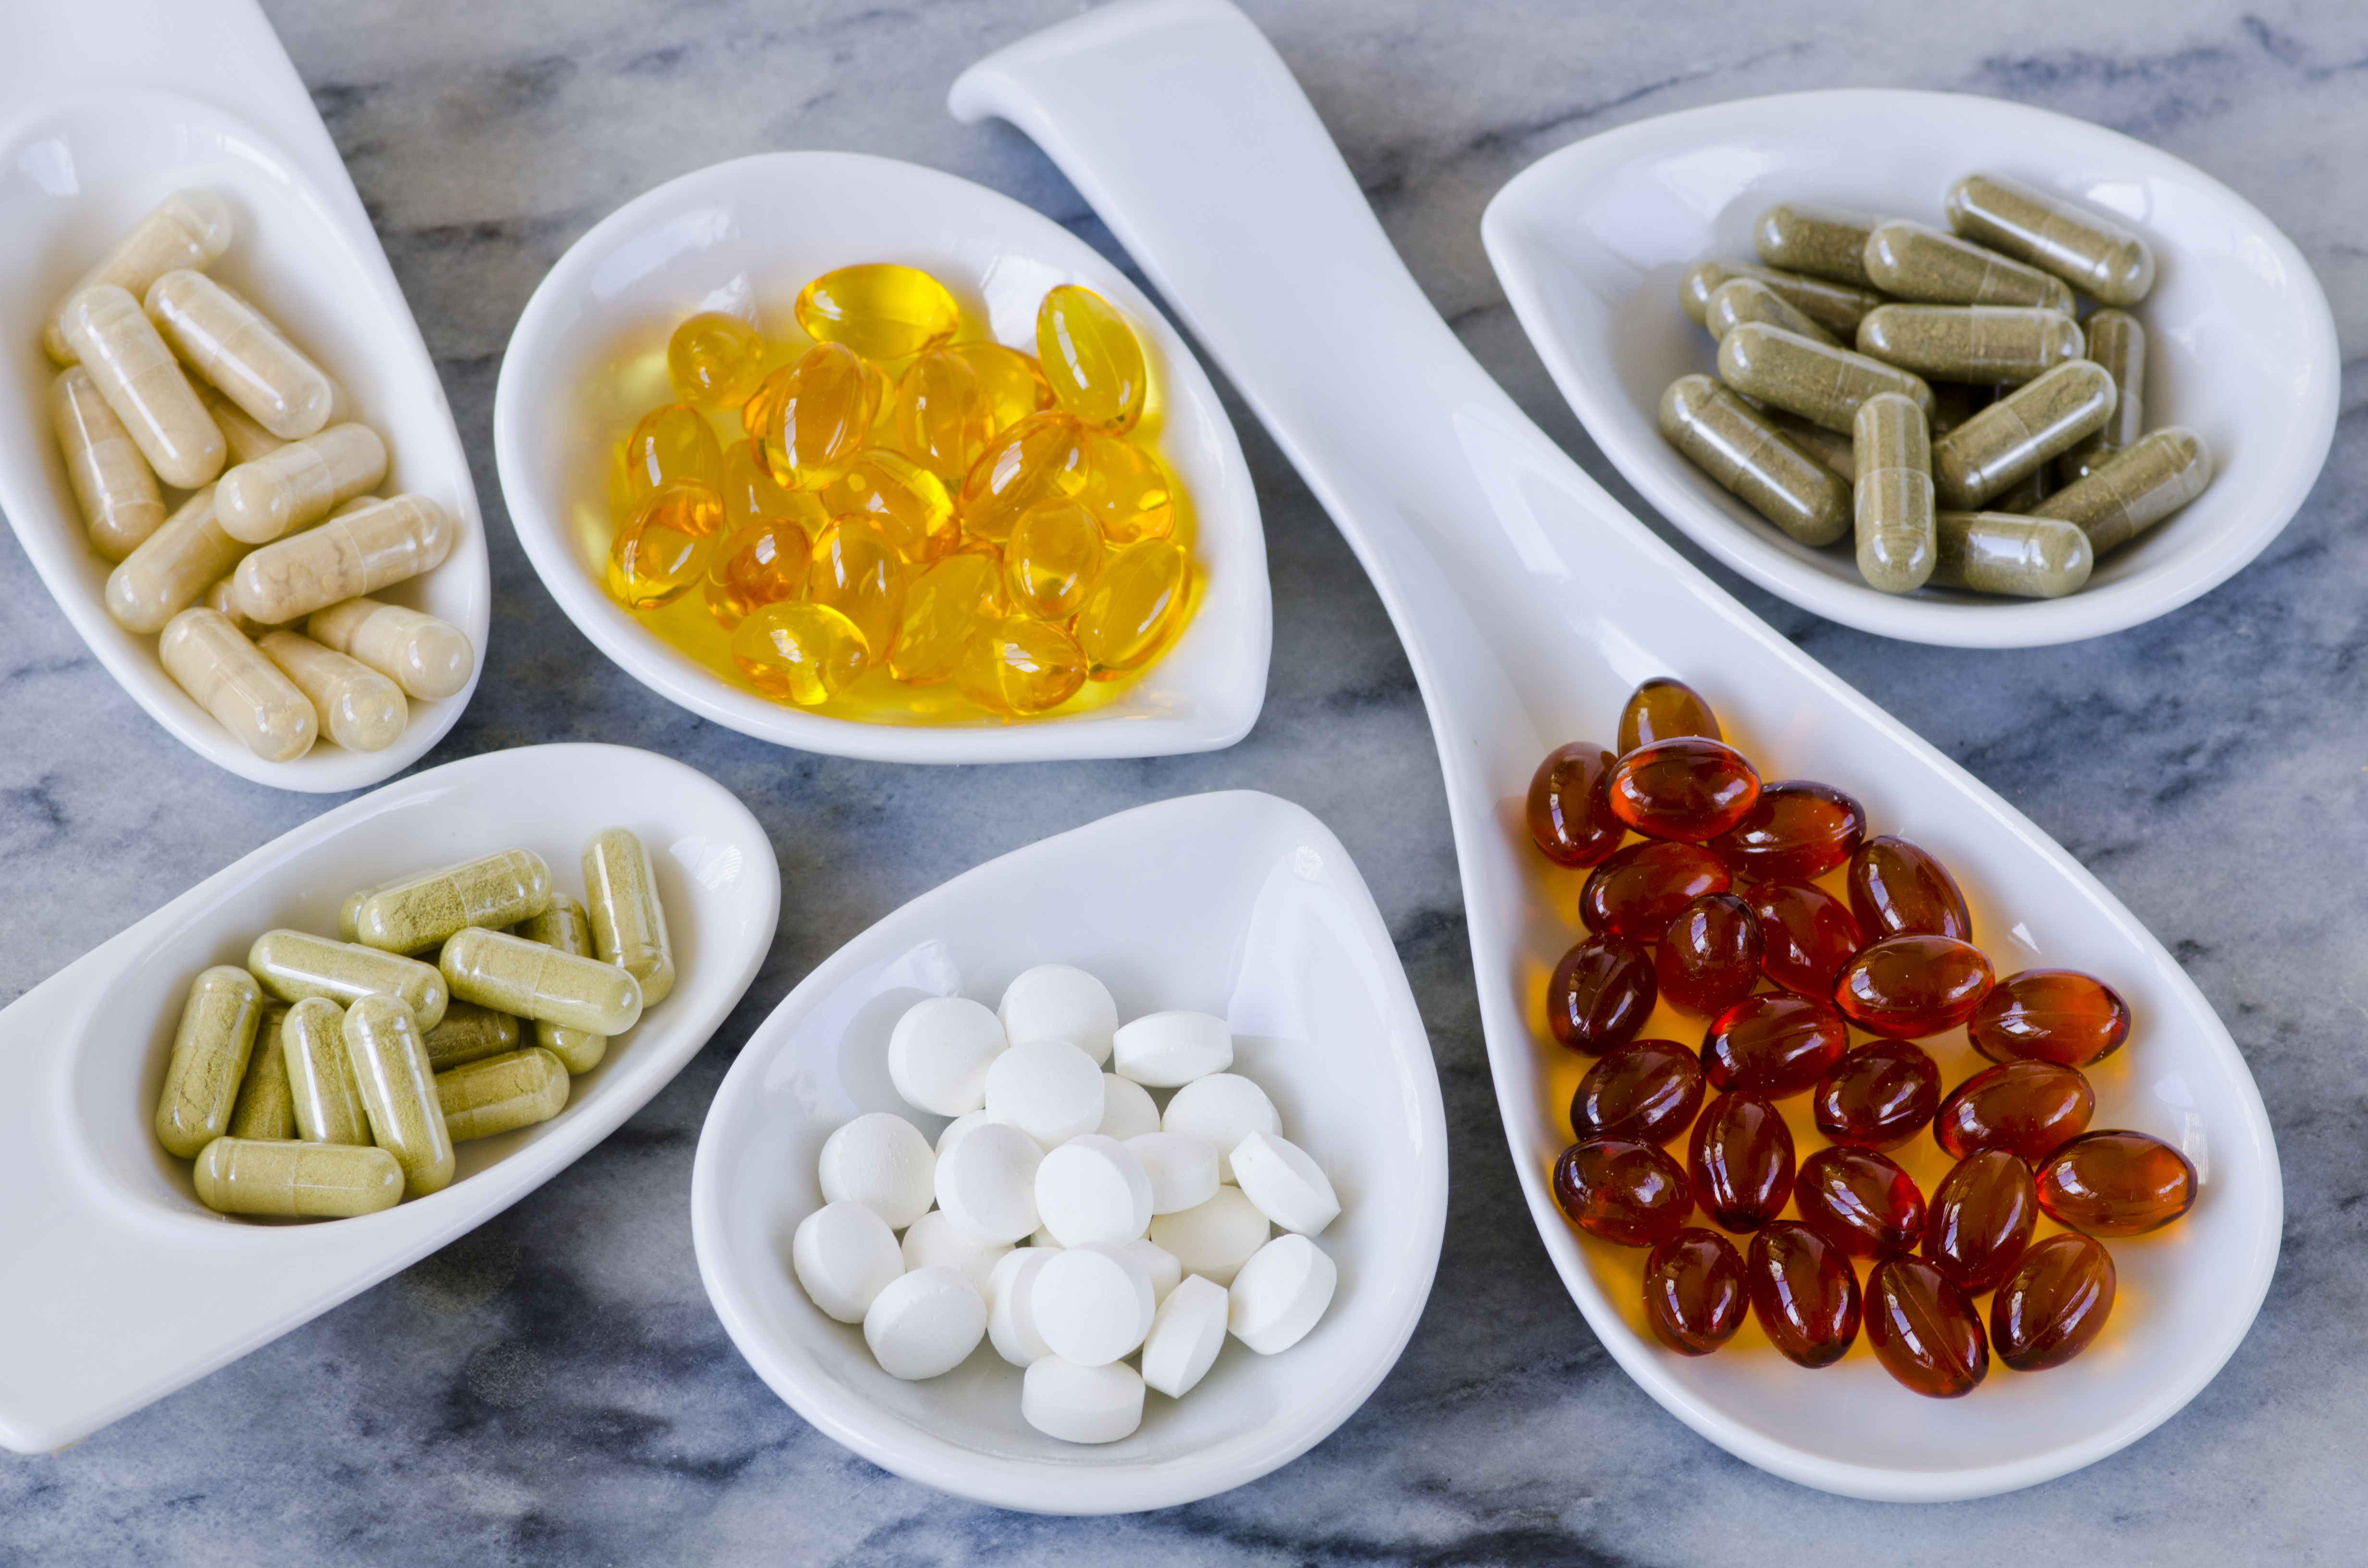 Should Multivitamins Be Taken With Food Or On An Empty Stomach